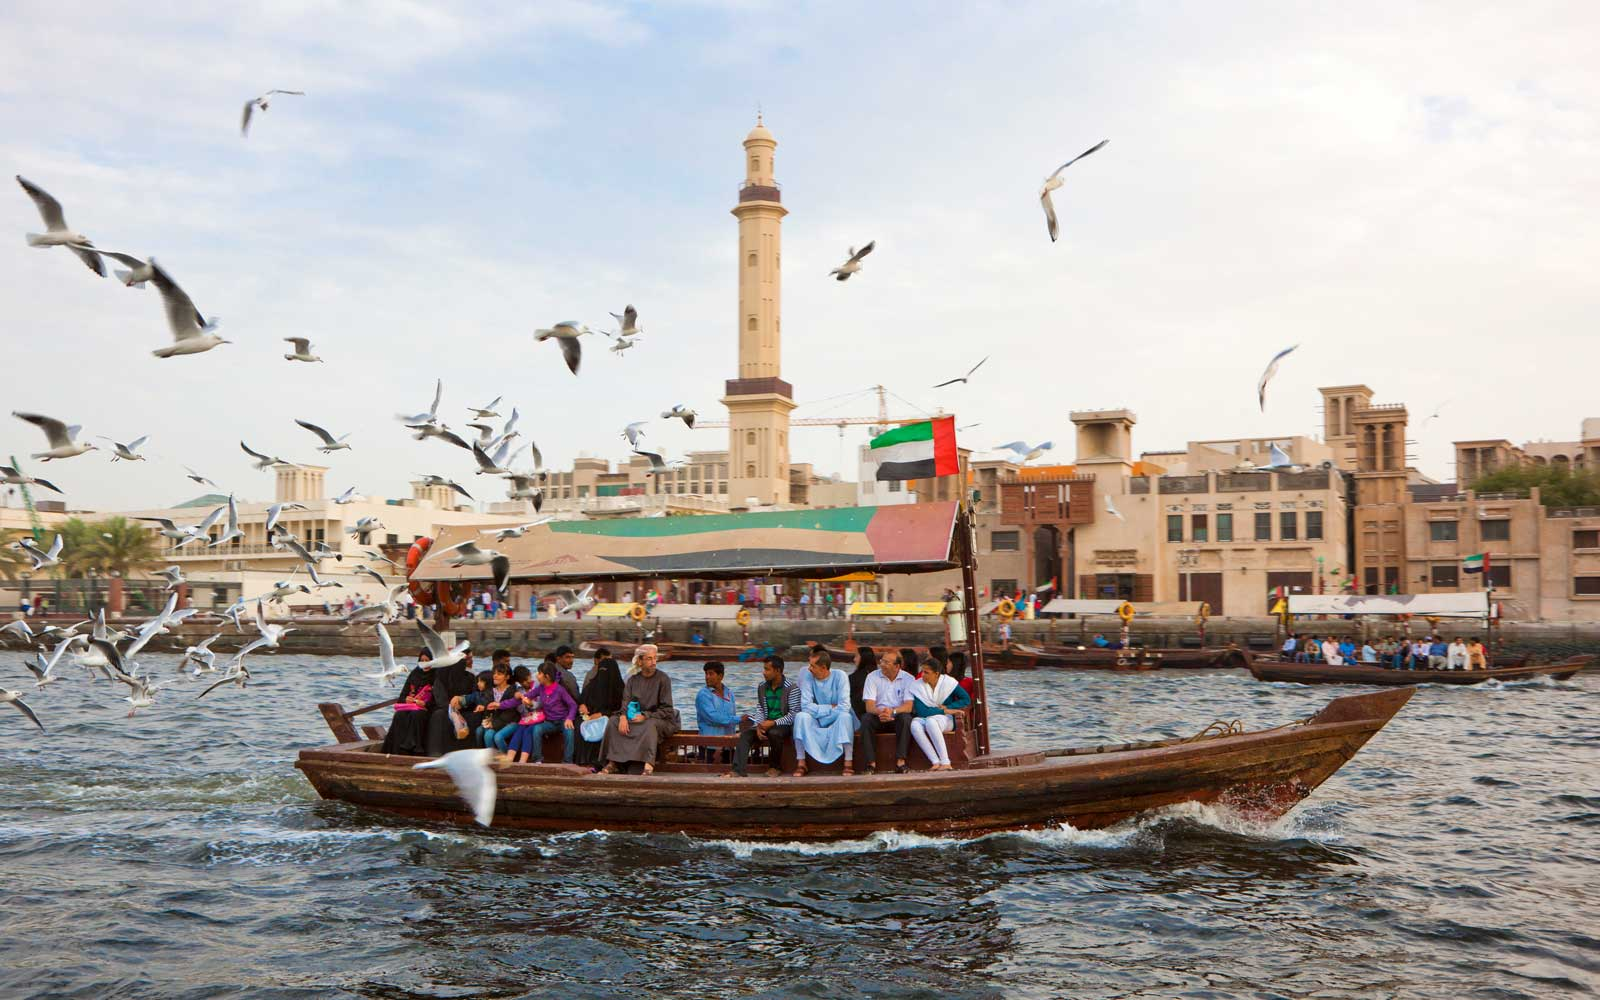 An Abra (water taxi) in Dubai Creek